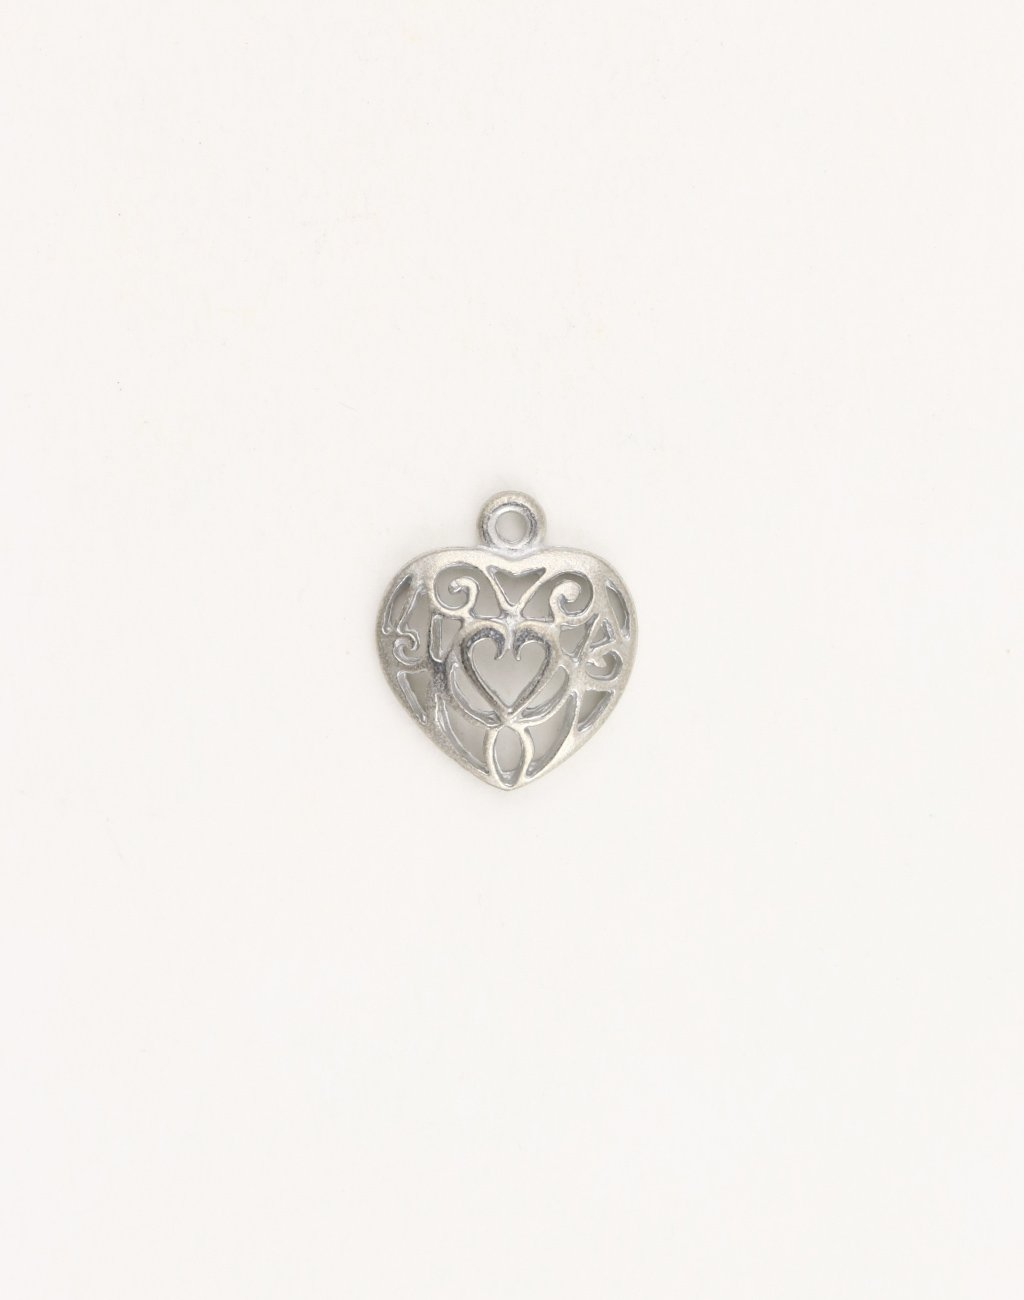 Filigree Heart, 19x17mm, (1pc)